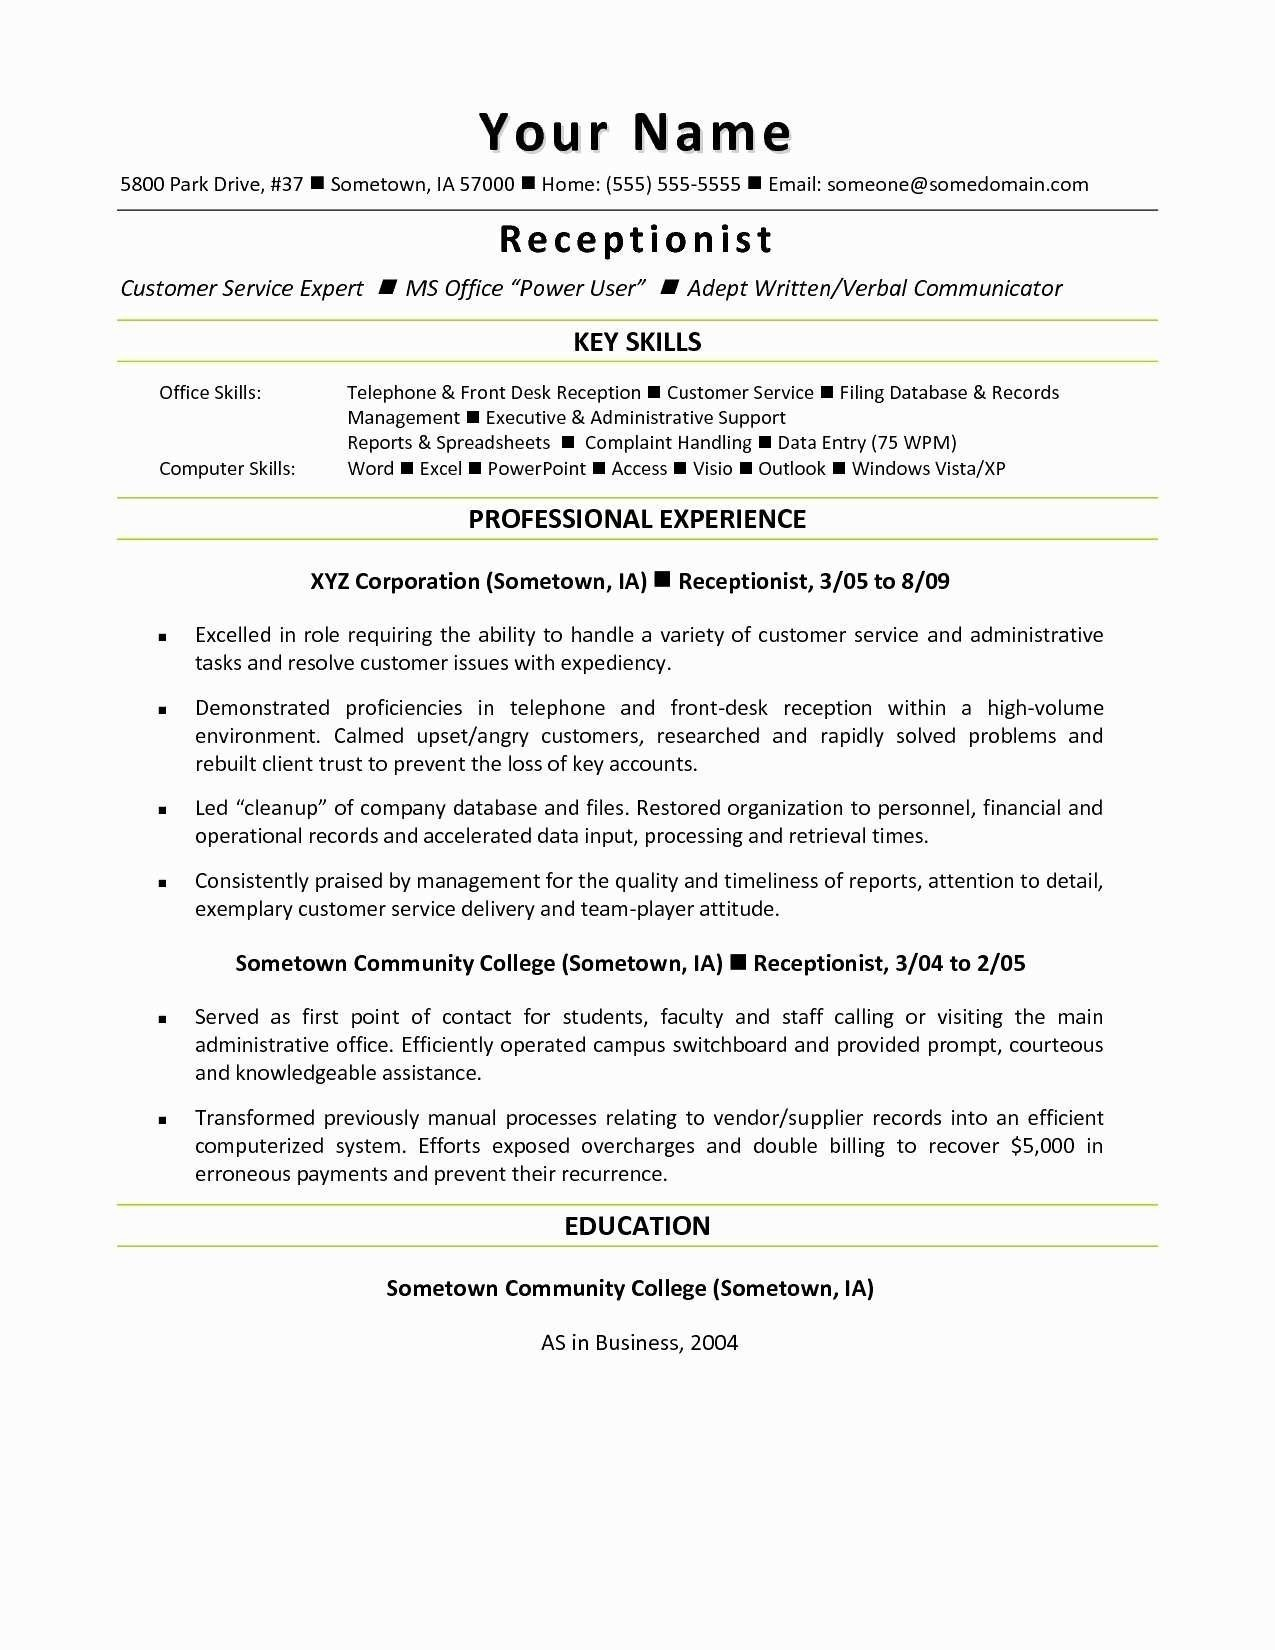 investment banking resume example Collection-Sample Investment Portfolio Analysis New Awesome Resume Portfolio Examples Fresh Bsw Resume 0d Skill Set 6-n